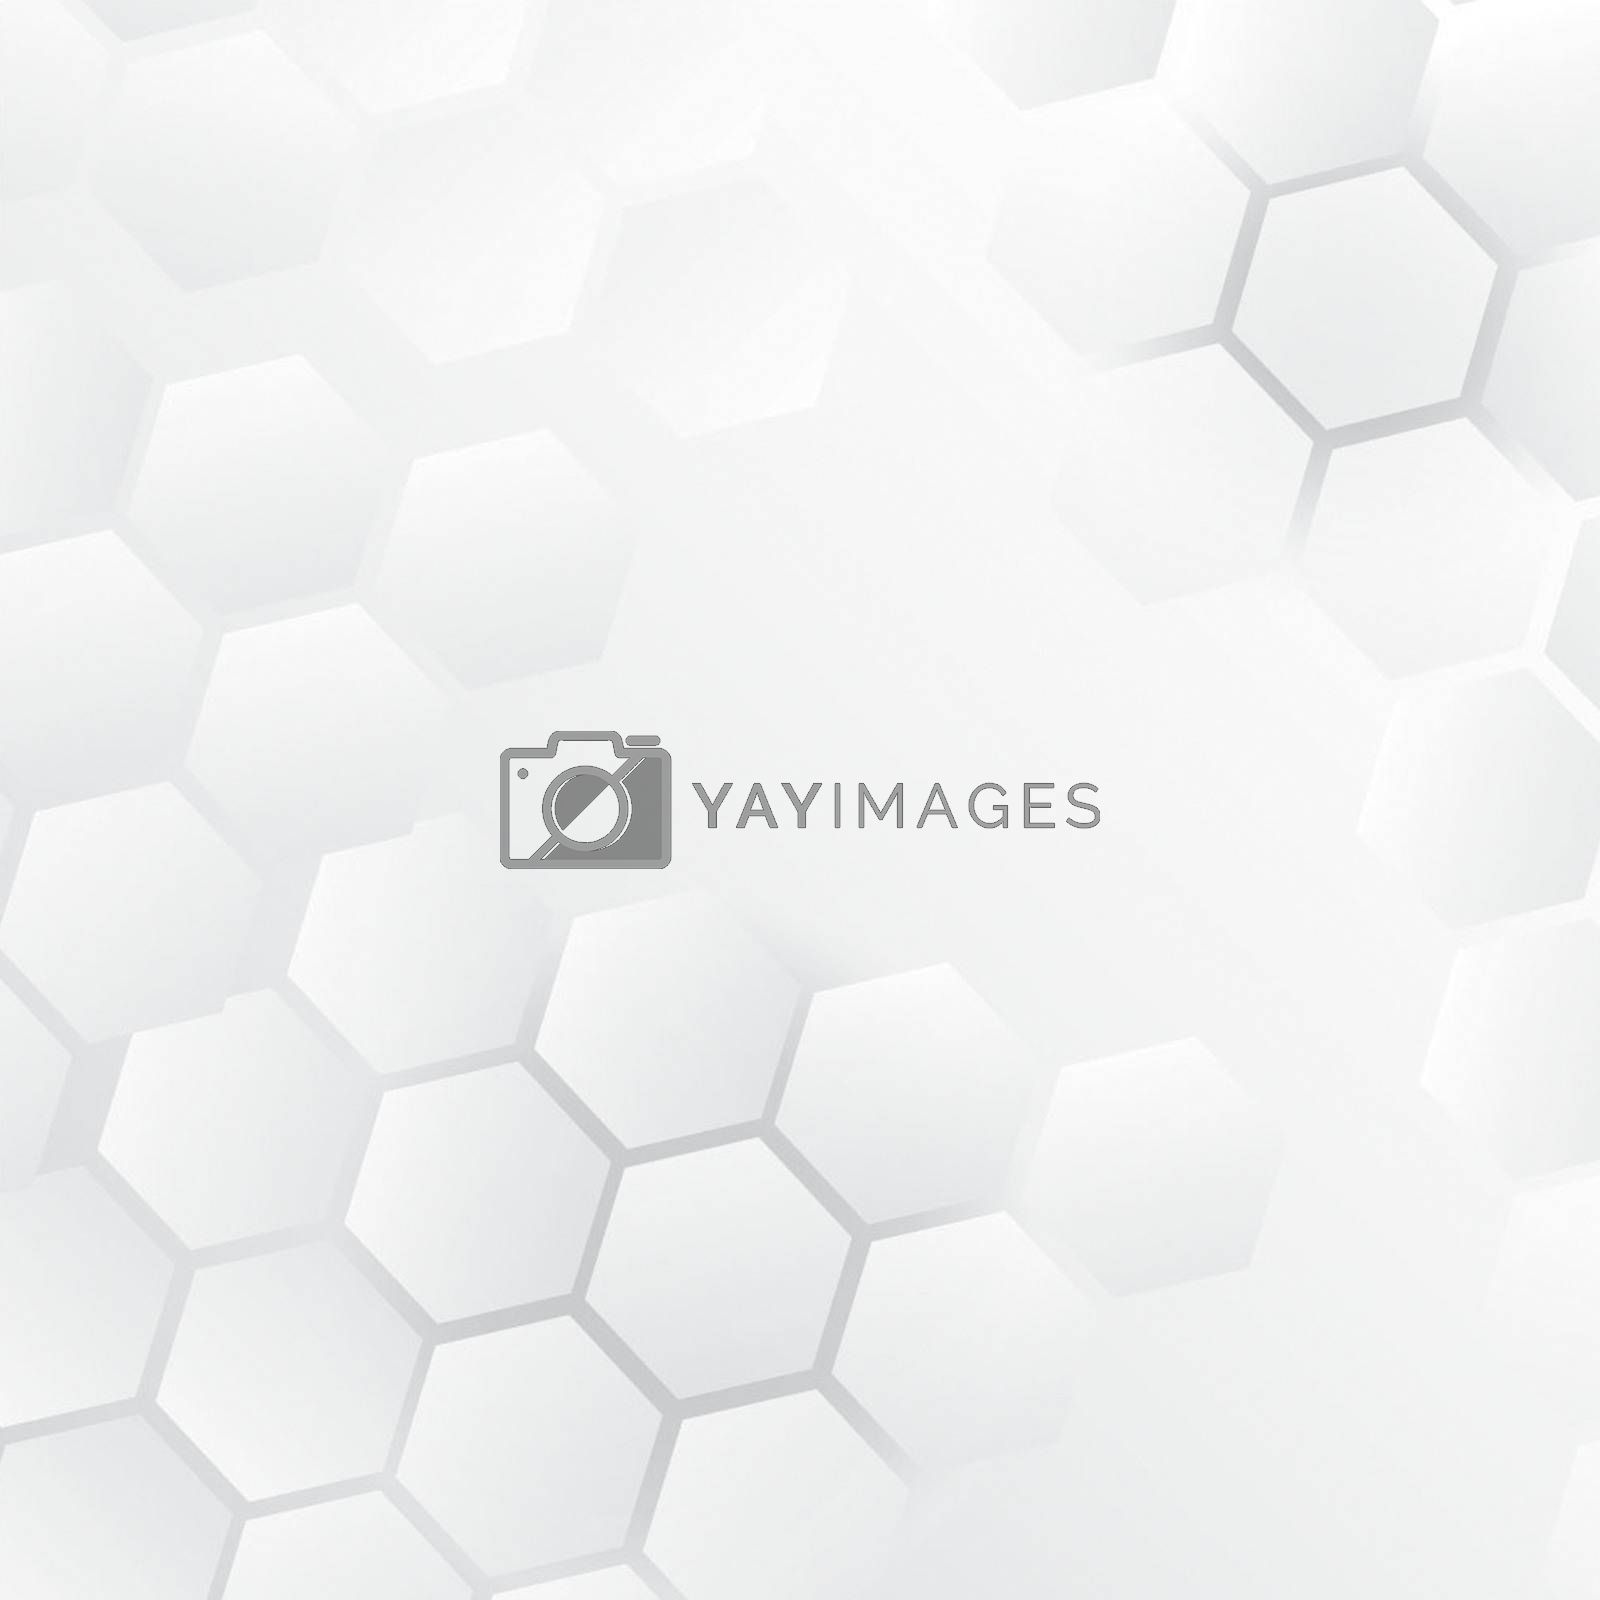 Geometric Hexagon White Background